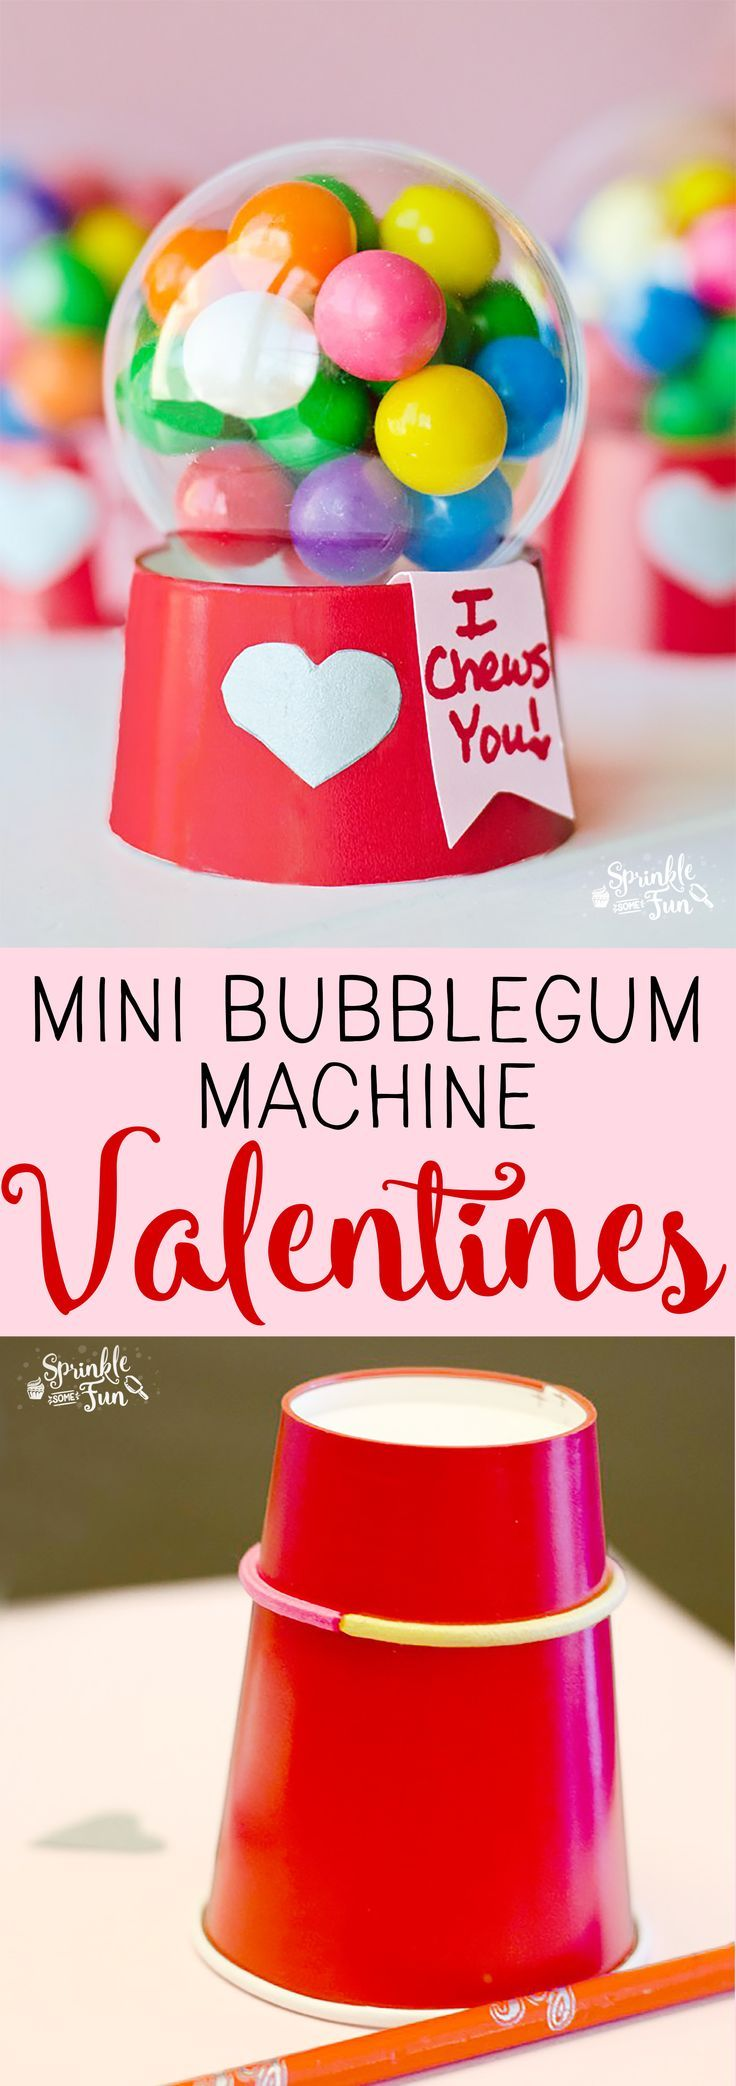 17 Best images about Valentine's Day on Pinterest | Valentine day ...